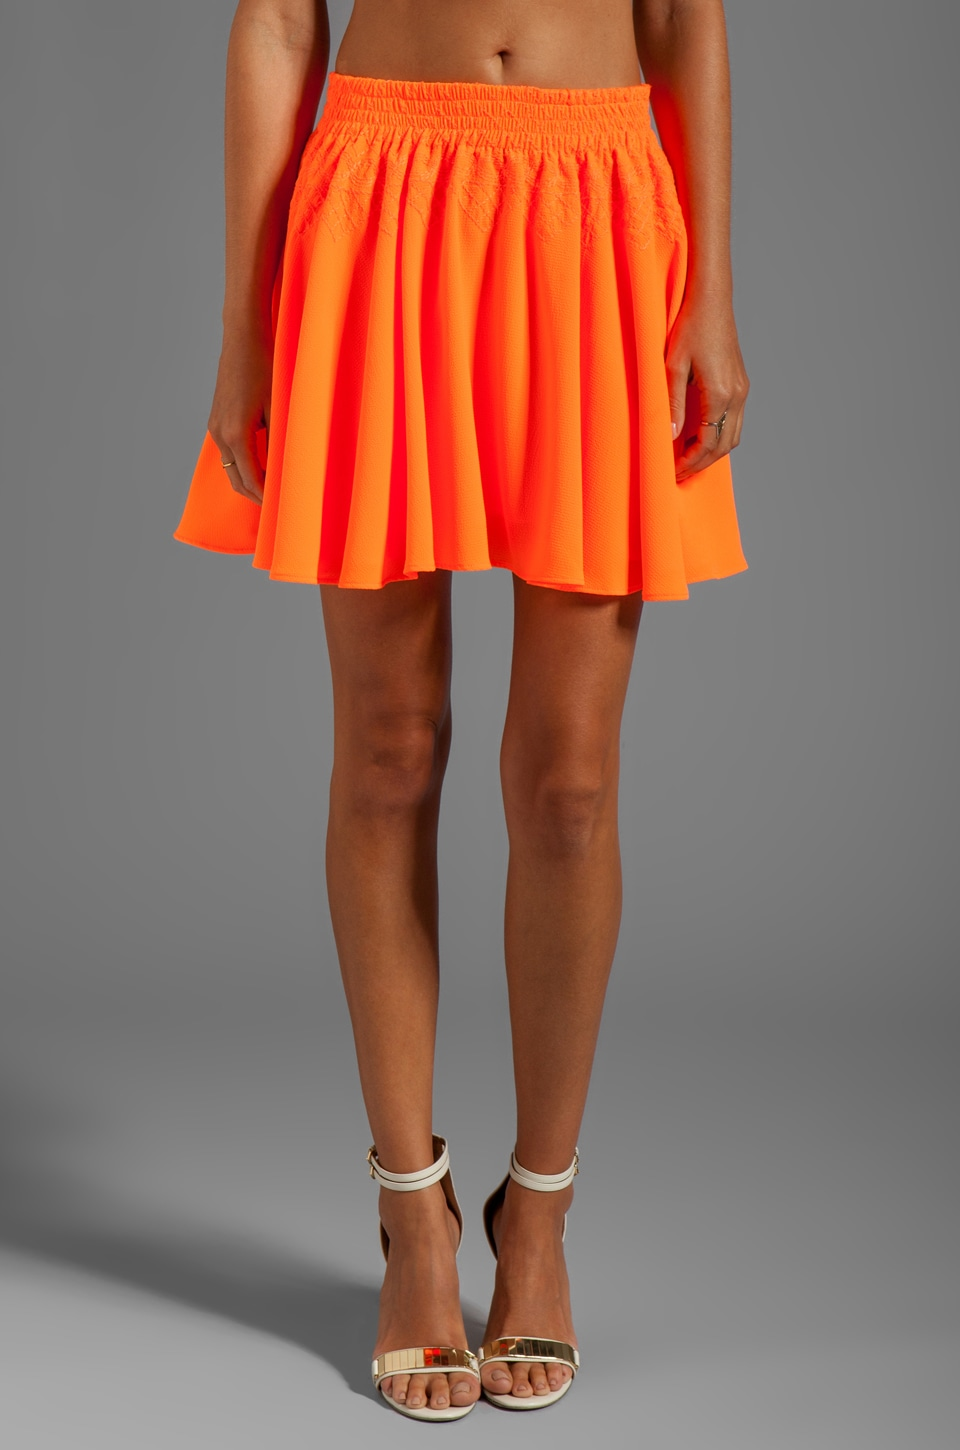 Lovers + Friends Clarita Skirt in Orange